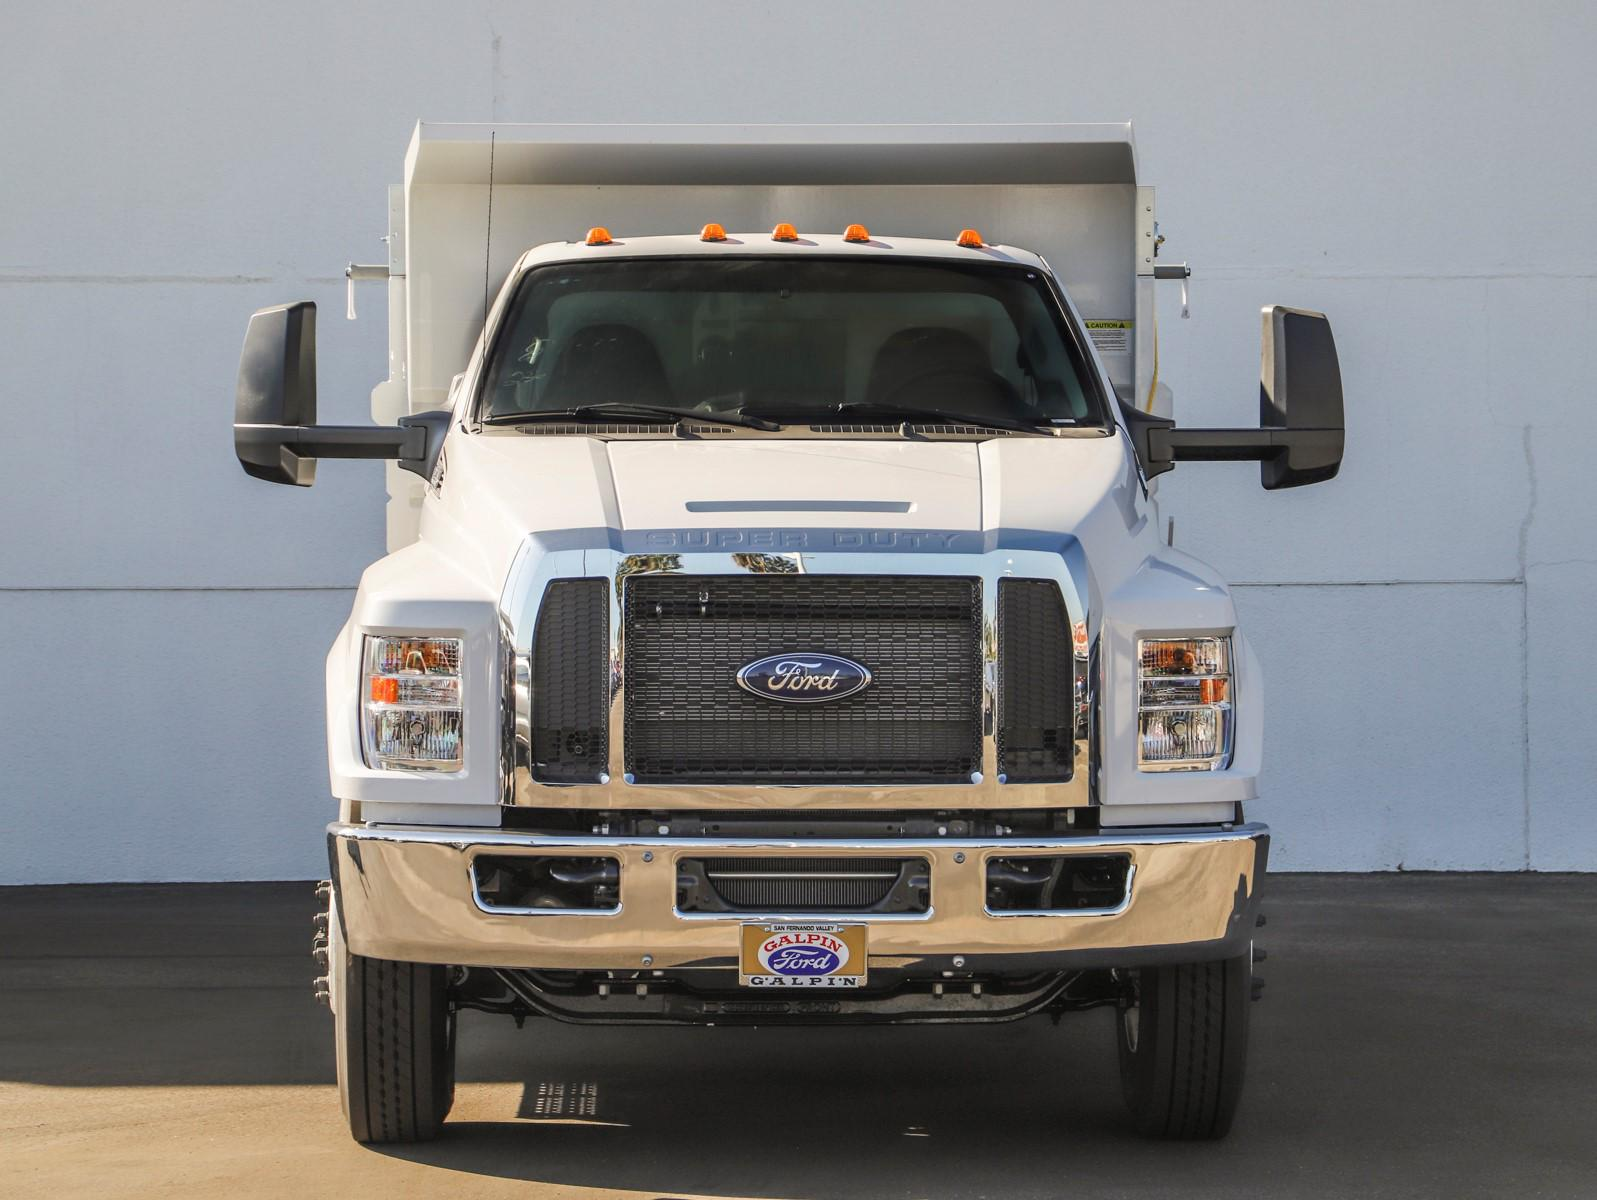 2021 Ford F-650 Regular Cab DRW 4x2, Scelzi Dump Body #E210034 - photo 3